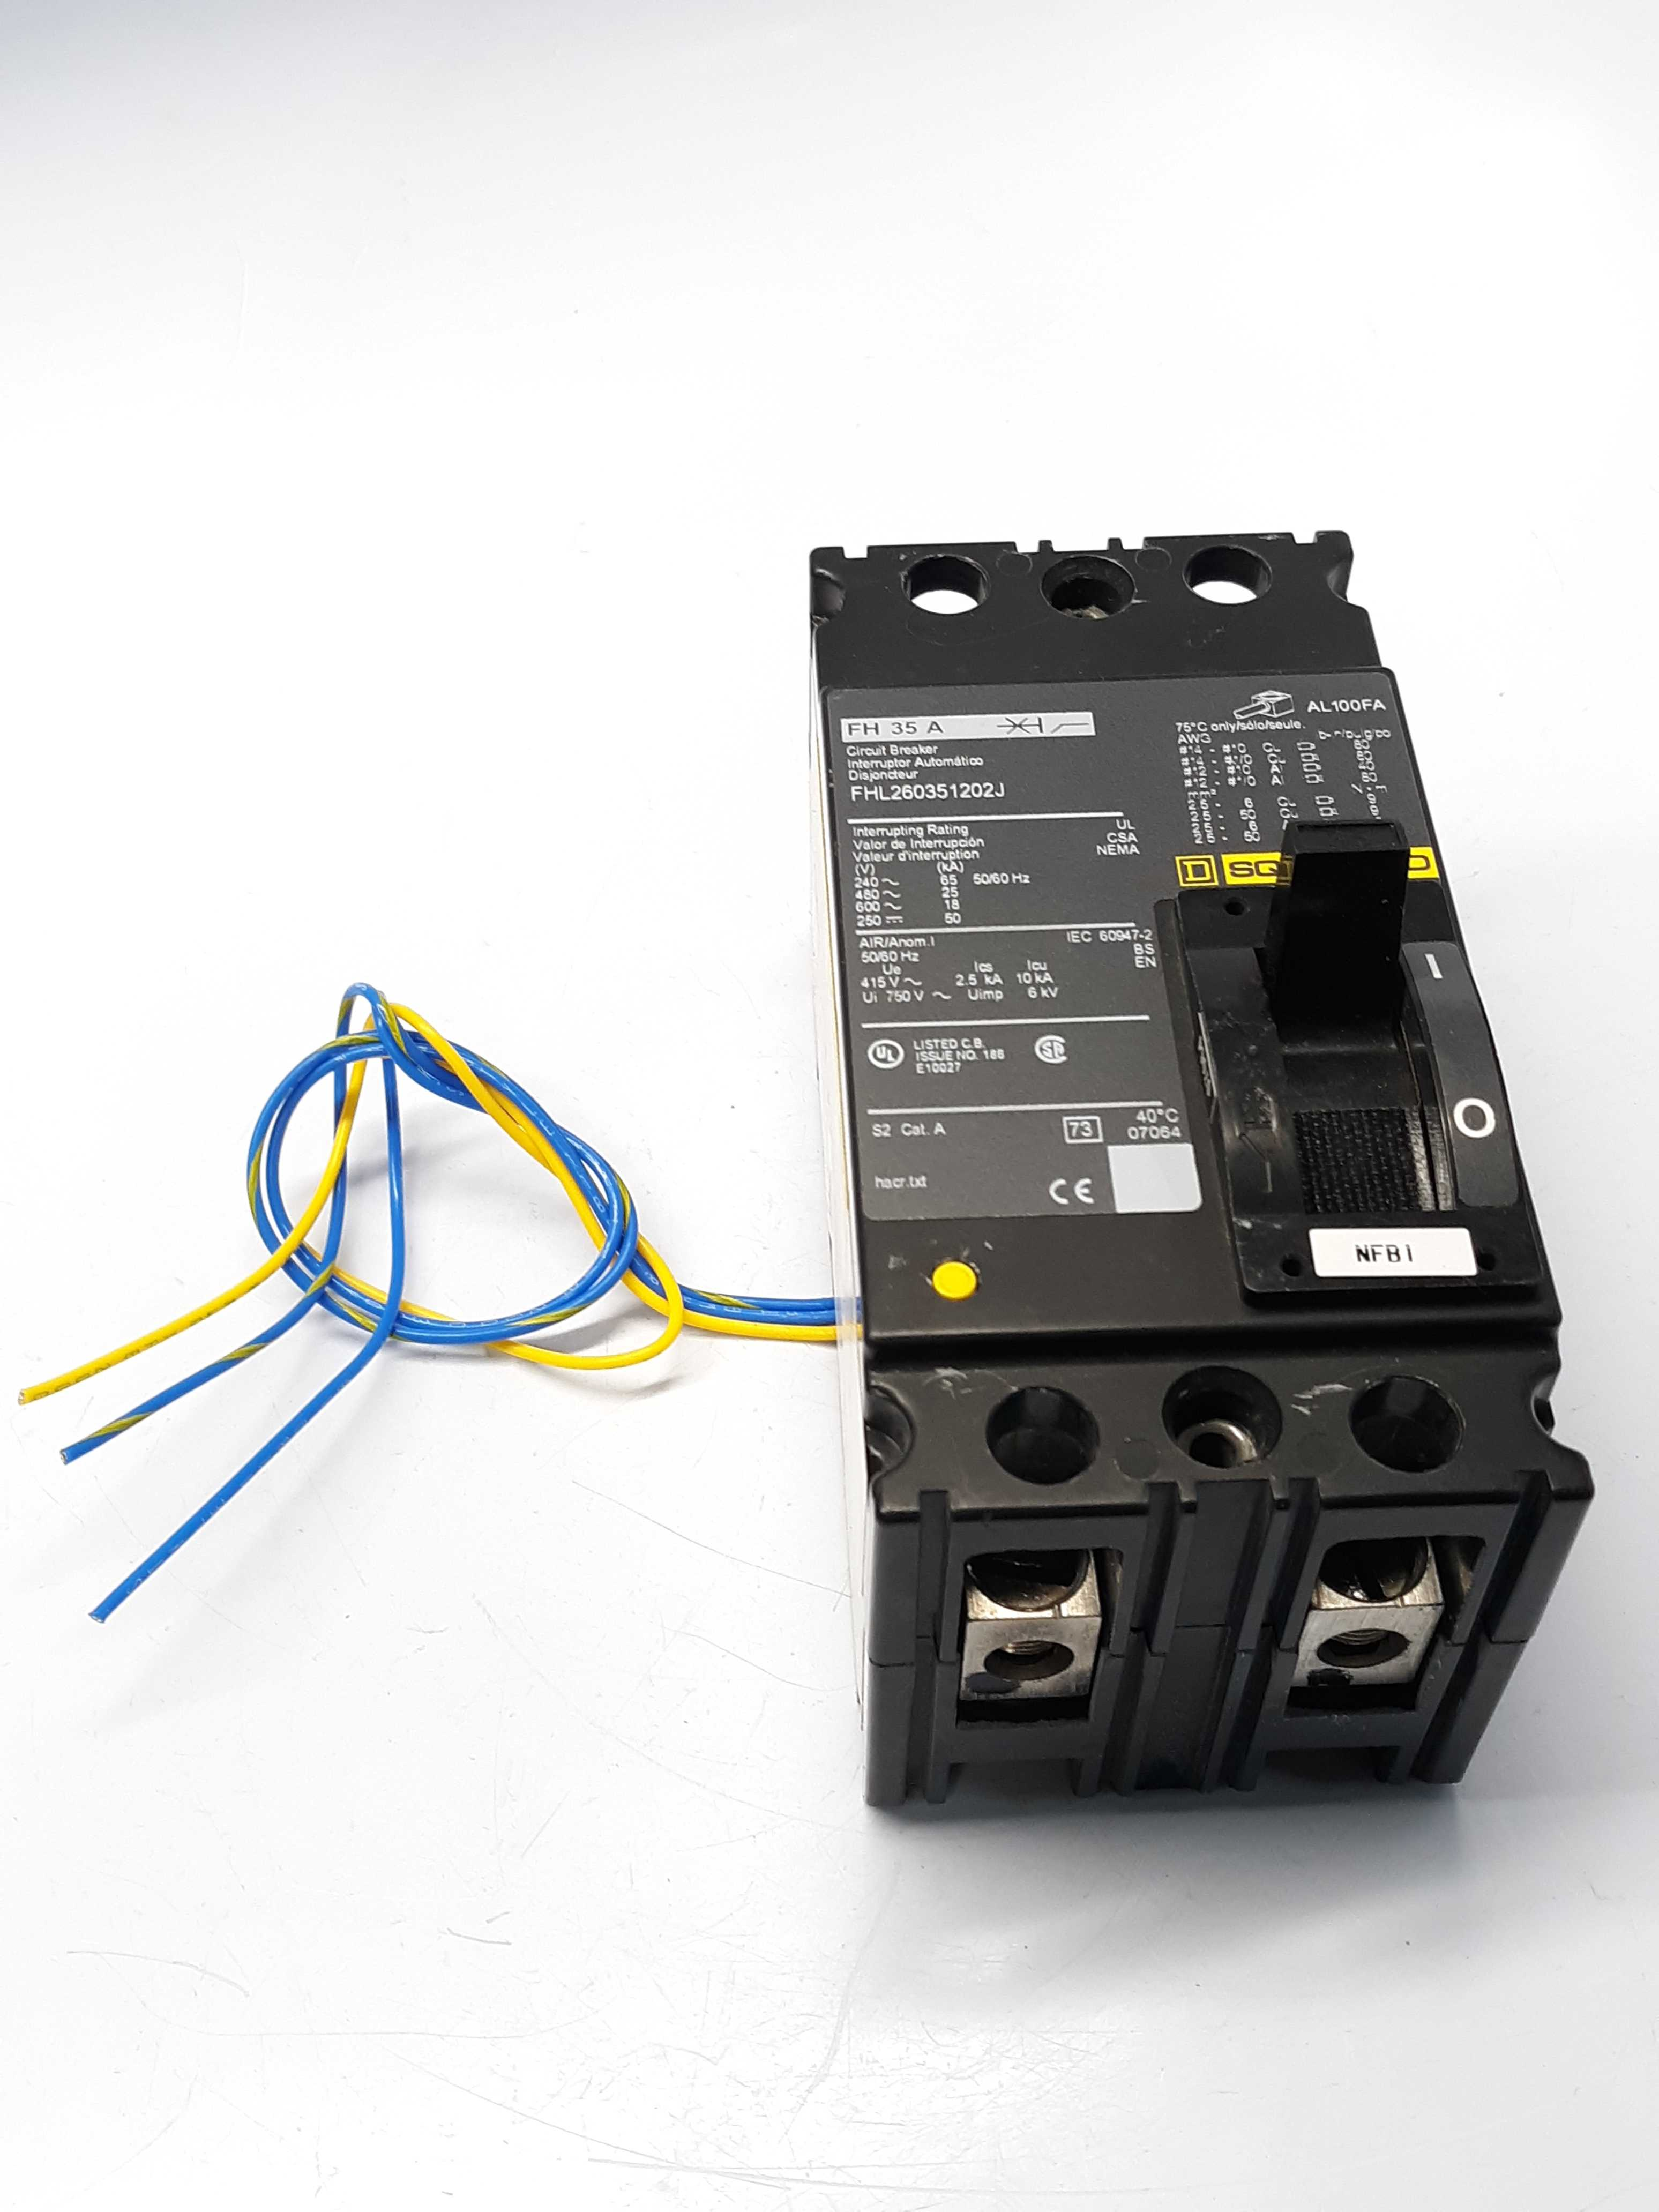 Square D FHL260351202J  Circuit Breaker Auxiliary Switch